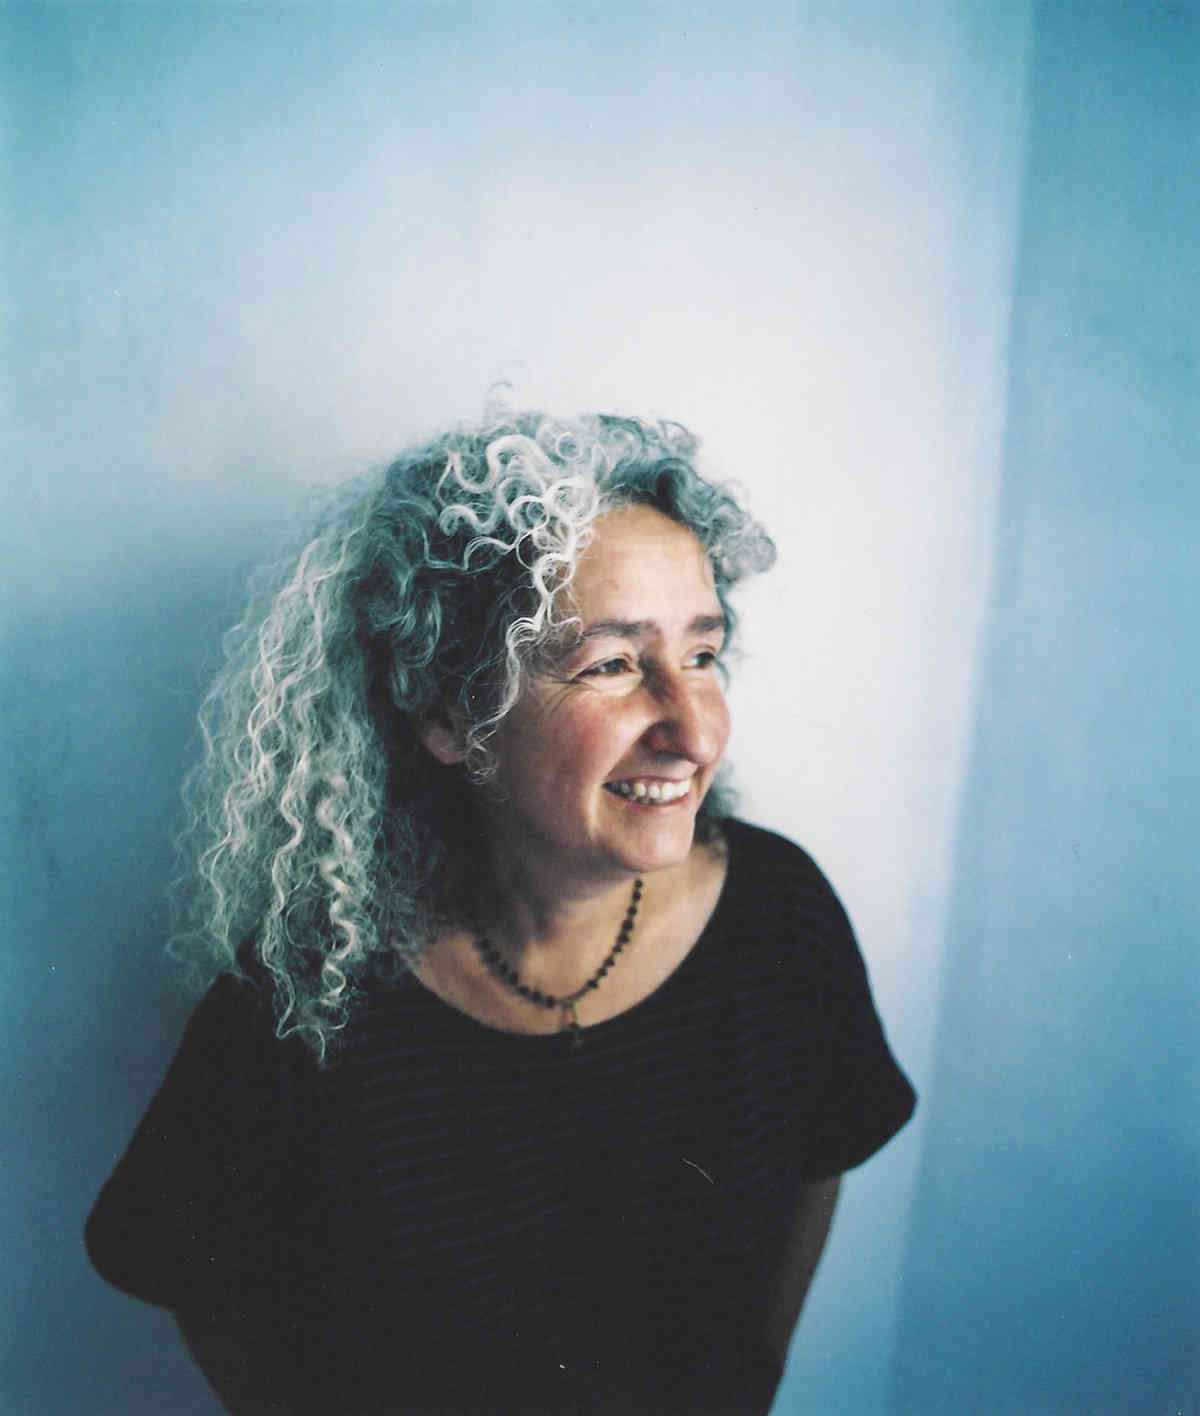 Fin folk: Arlo and Nora Guthrie to lead this year's Mermaid Parade